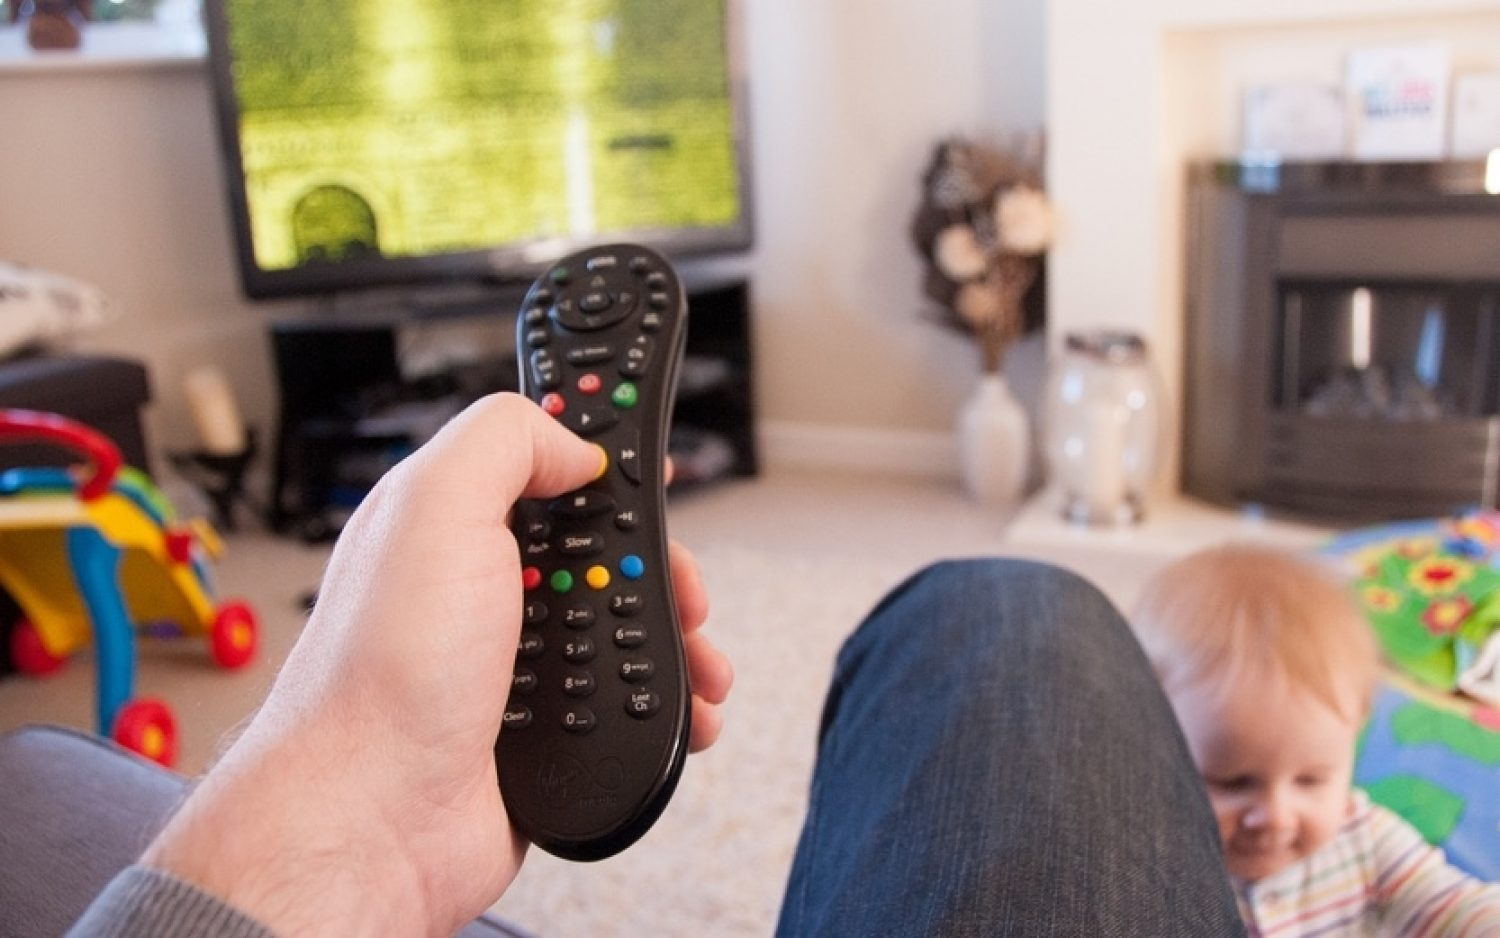 Family-friendly video service under fire